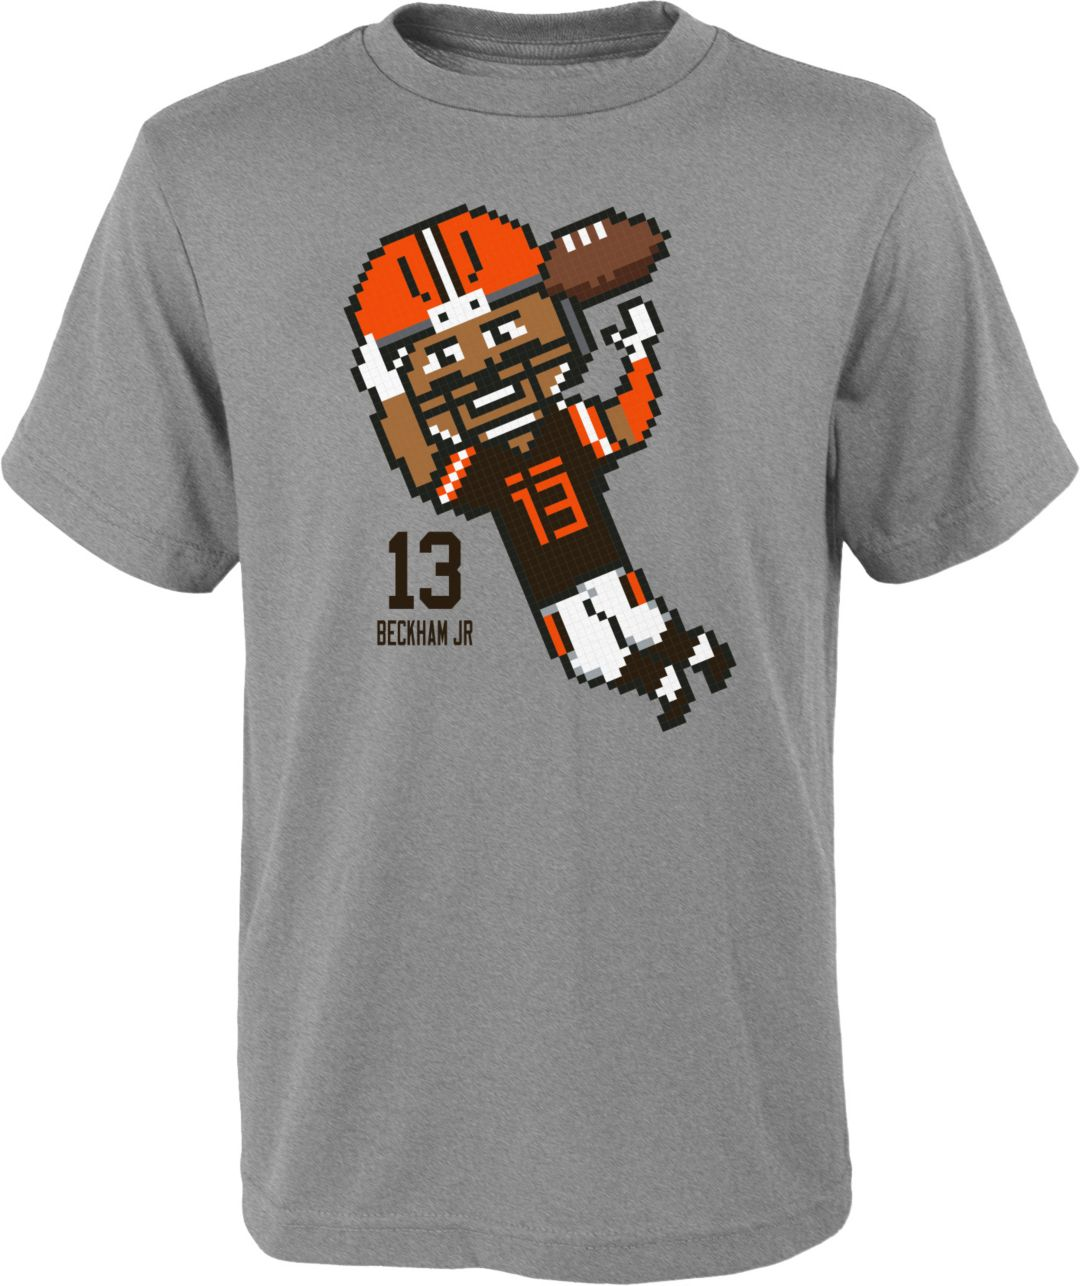 sports shoes 9c400 4e823 NFL Team Apparel Youth Cleveland Browns Odell Beckham Jr. #13 Pixel T-Shirt